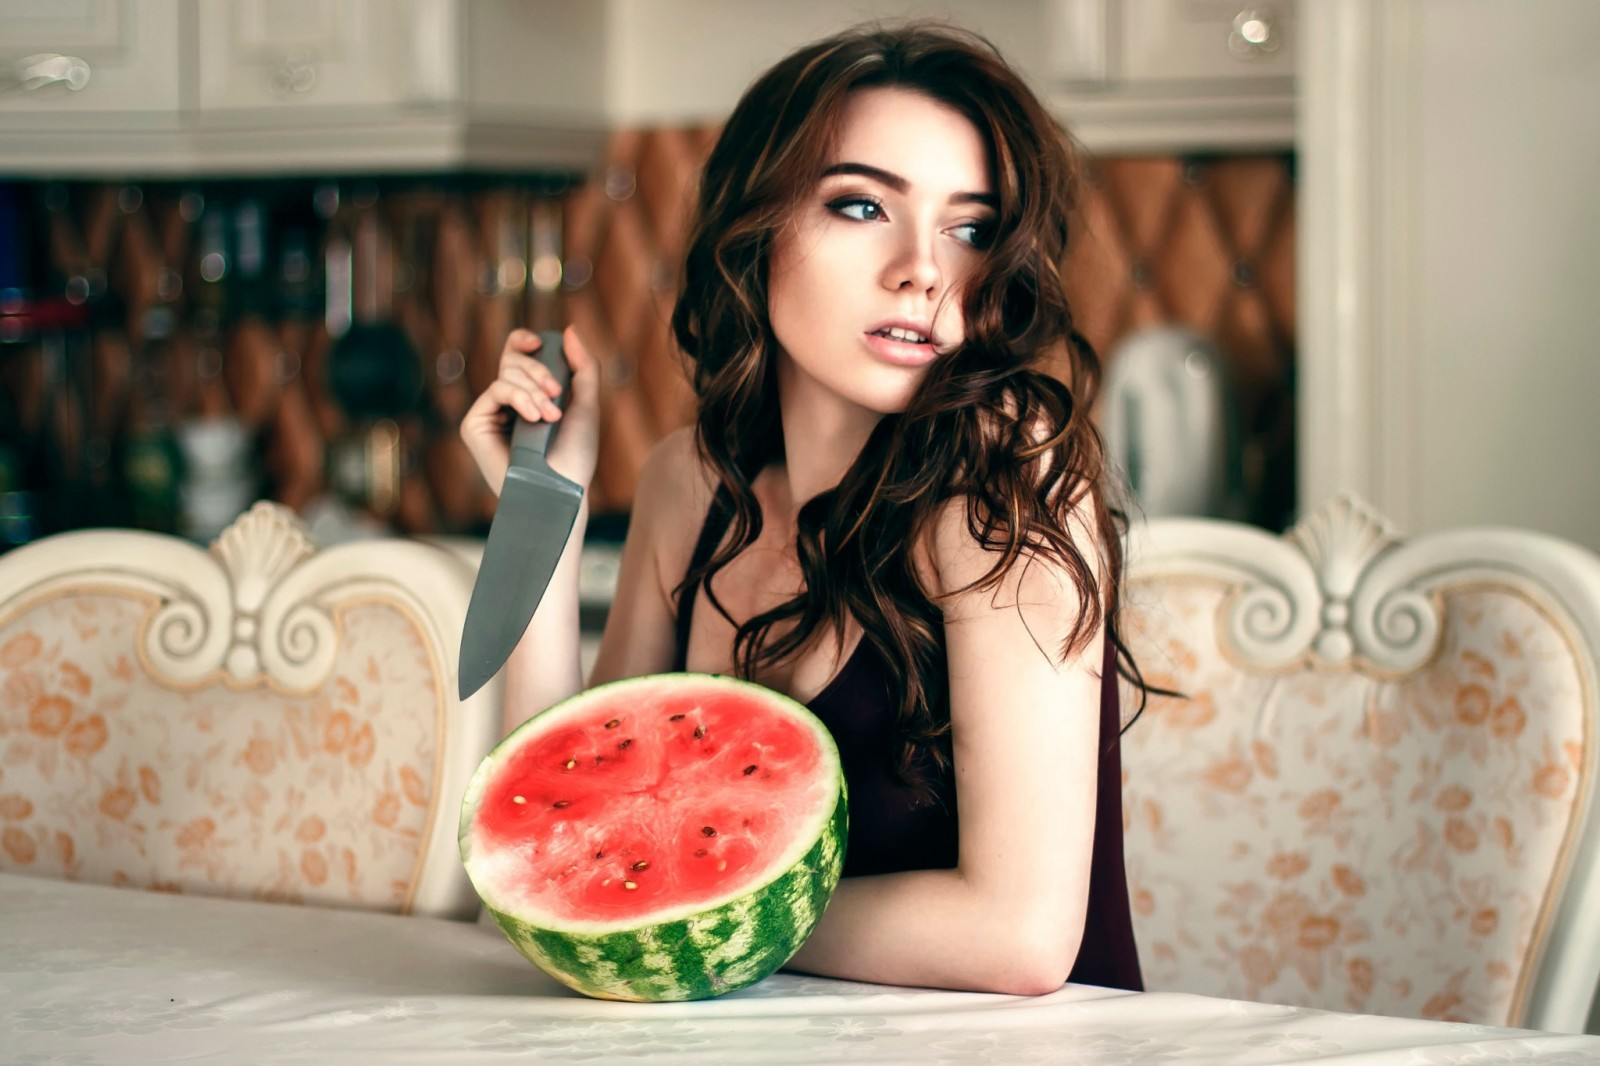 7 - 17 Girls With Their Watermelons To Give You A Taste Of Watermelonday